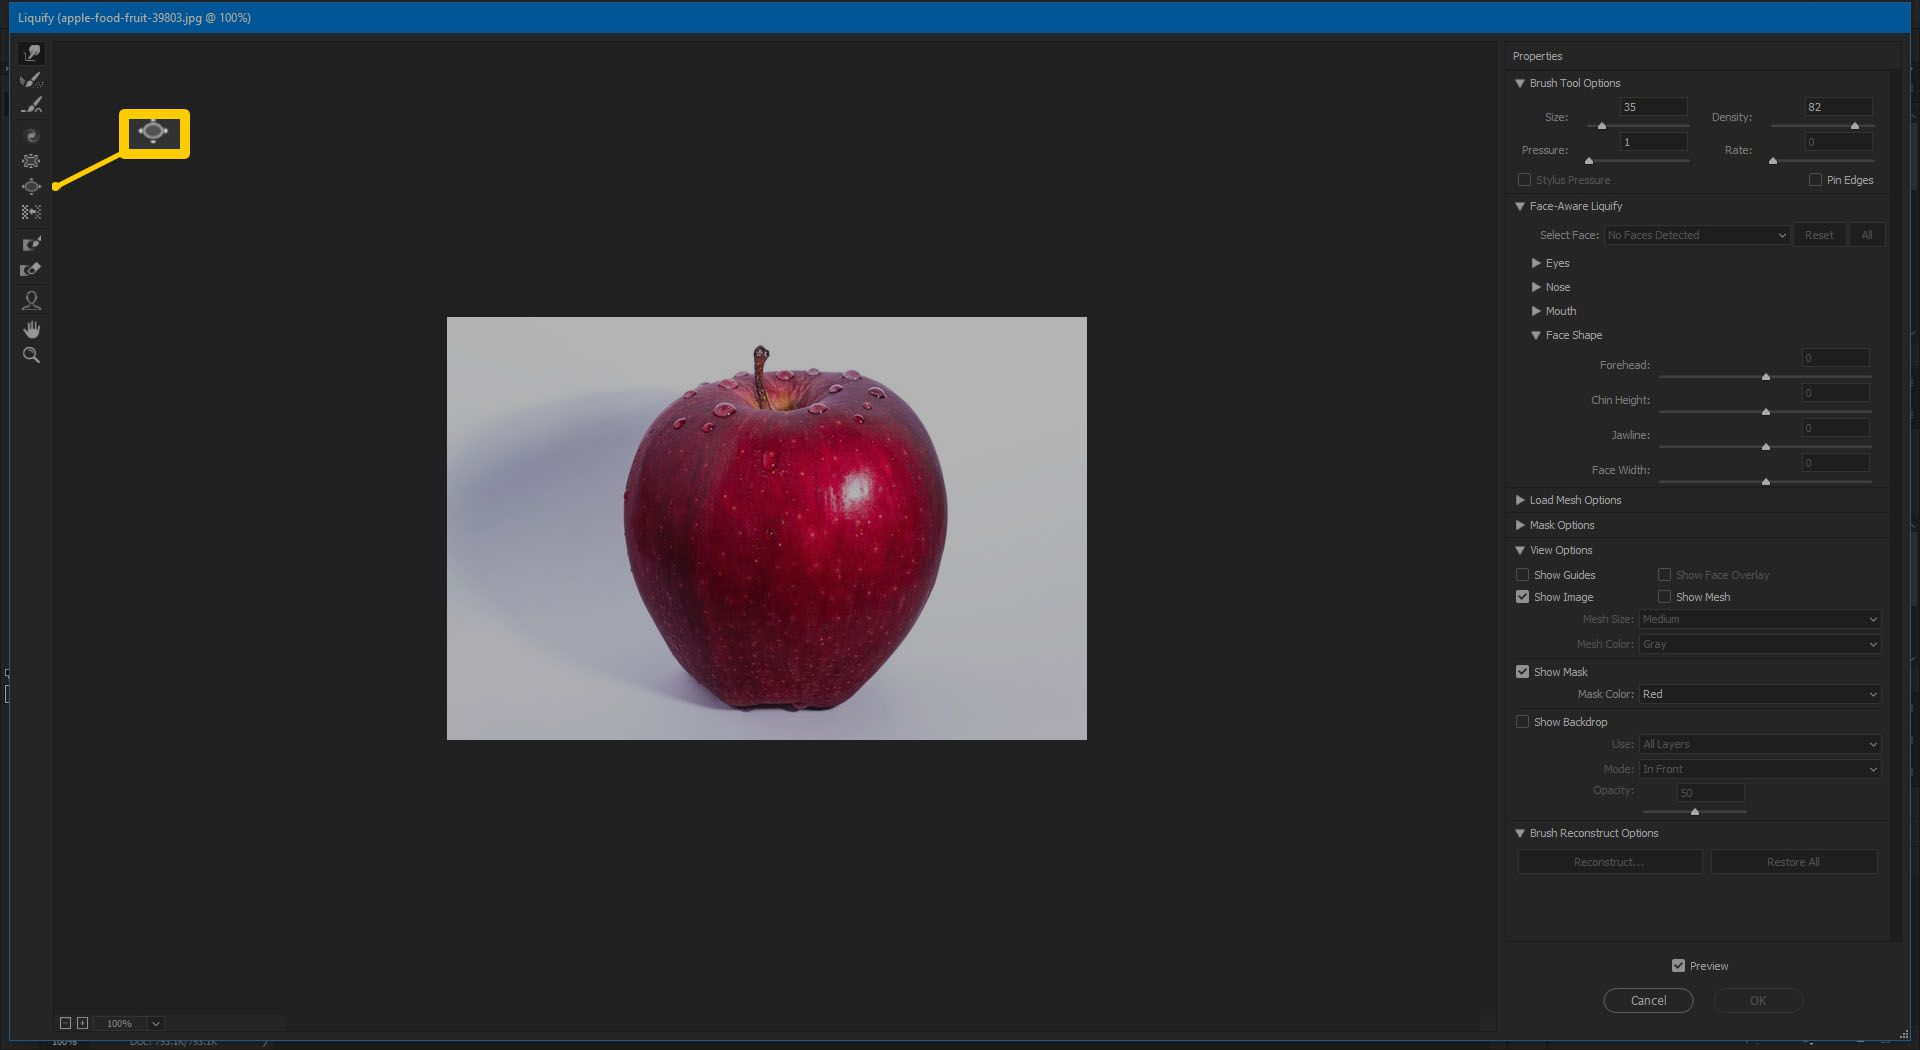 Screenshot of the Bloat Tool in Photoshop CC 2019.